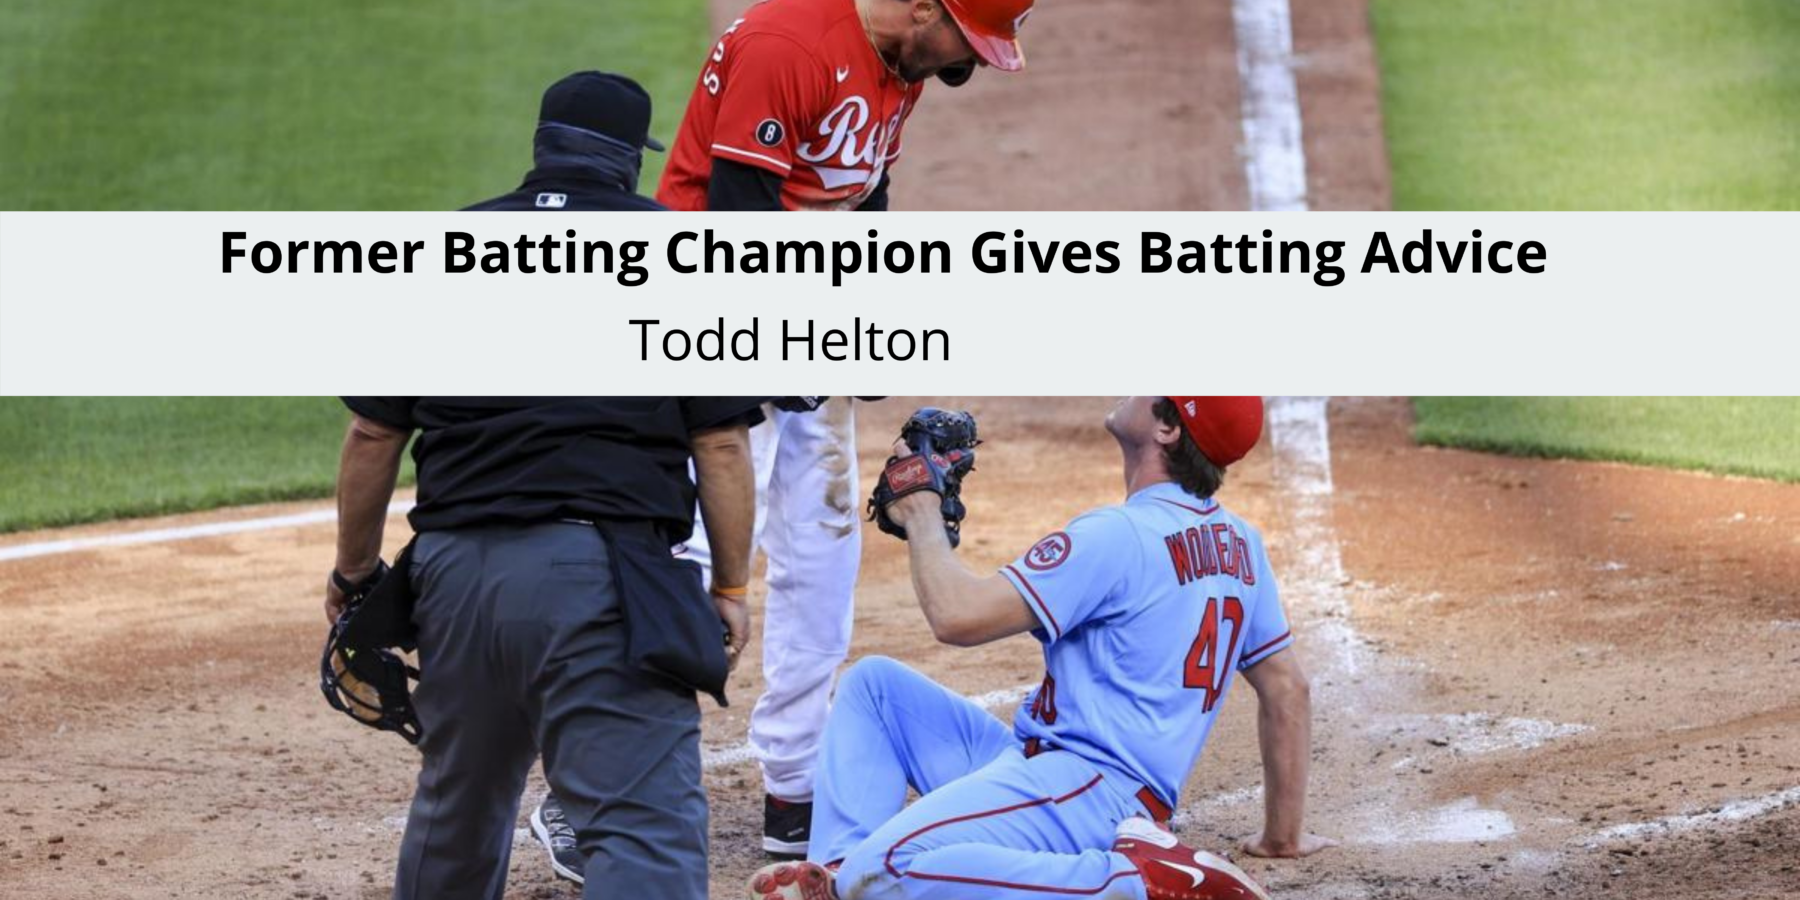 Former Batting Champion Todd Helton has Gives Batting Advice